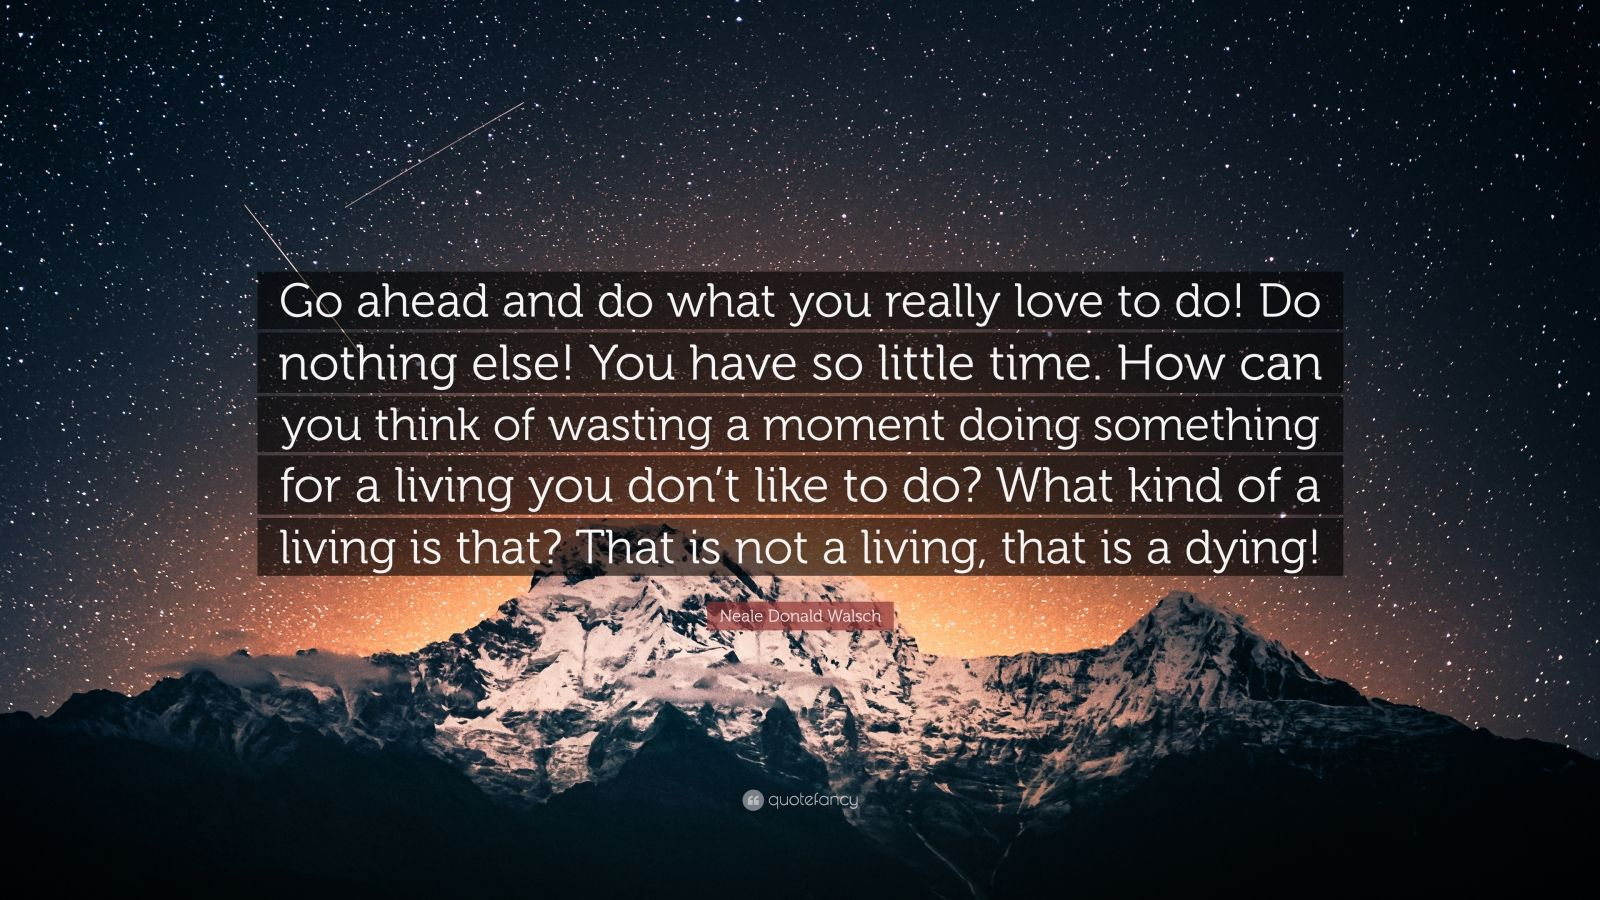 """Neale Donald Walsch Quote: """"Go ahead and do what you really love to do! Do nothing else! You have so little time. How can you think of wasting a moment doing something for a living you don't like to do? What kind of a living is that? That is not a living, that is a dying!"""""""